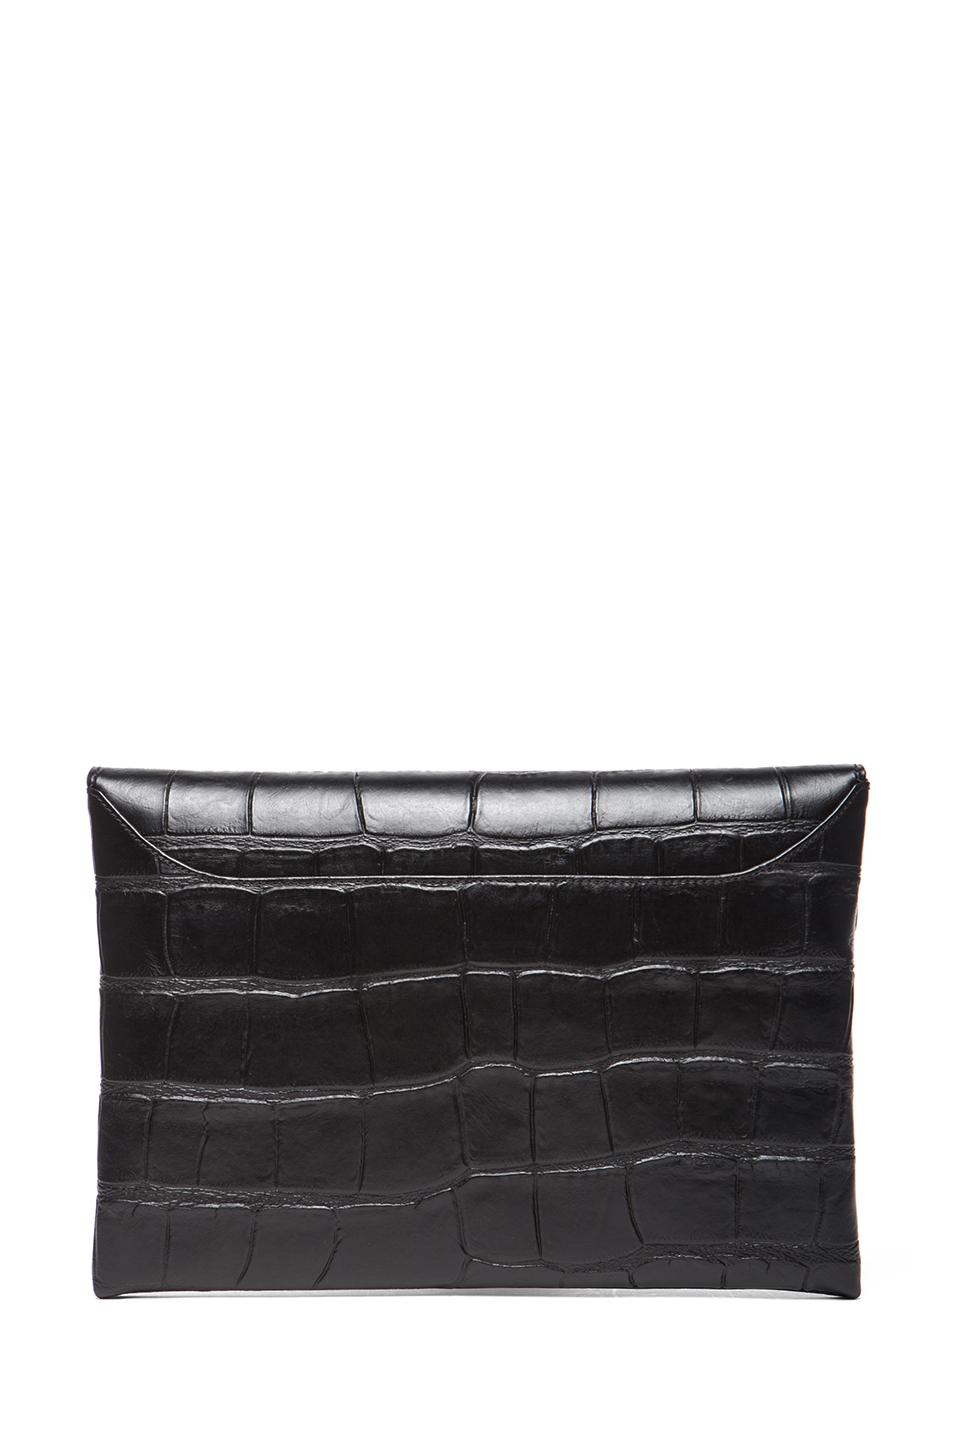 GIVENCHY|Medium Stamped Croc Antigona Envelope in Black